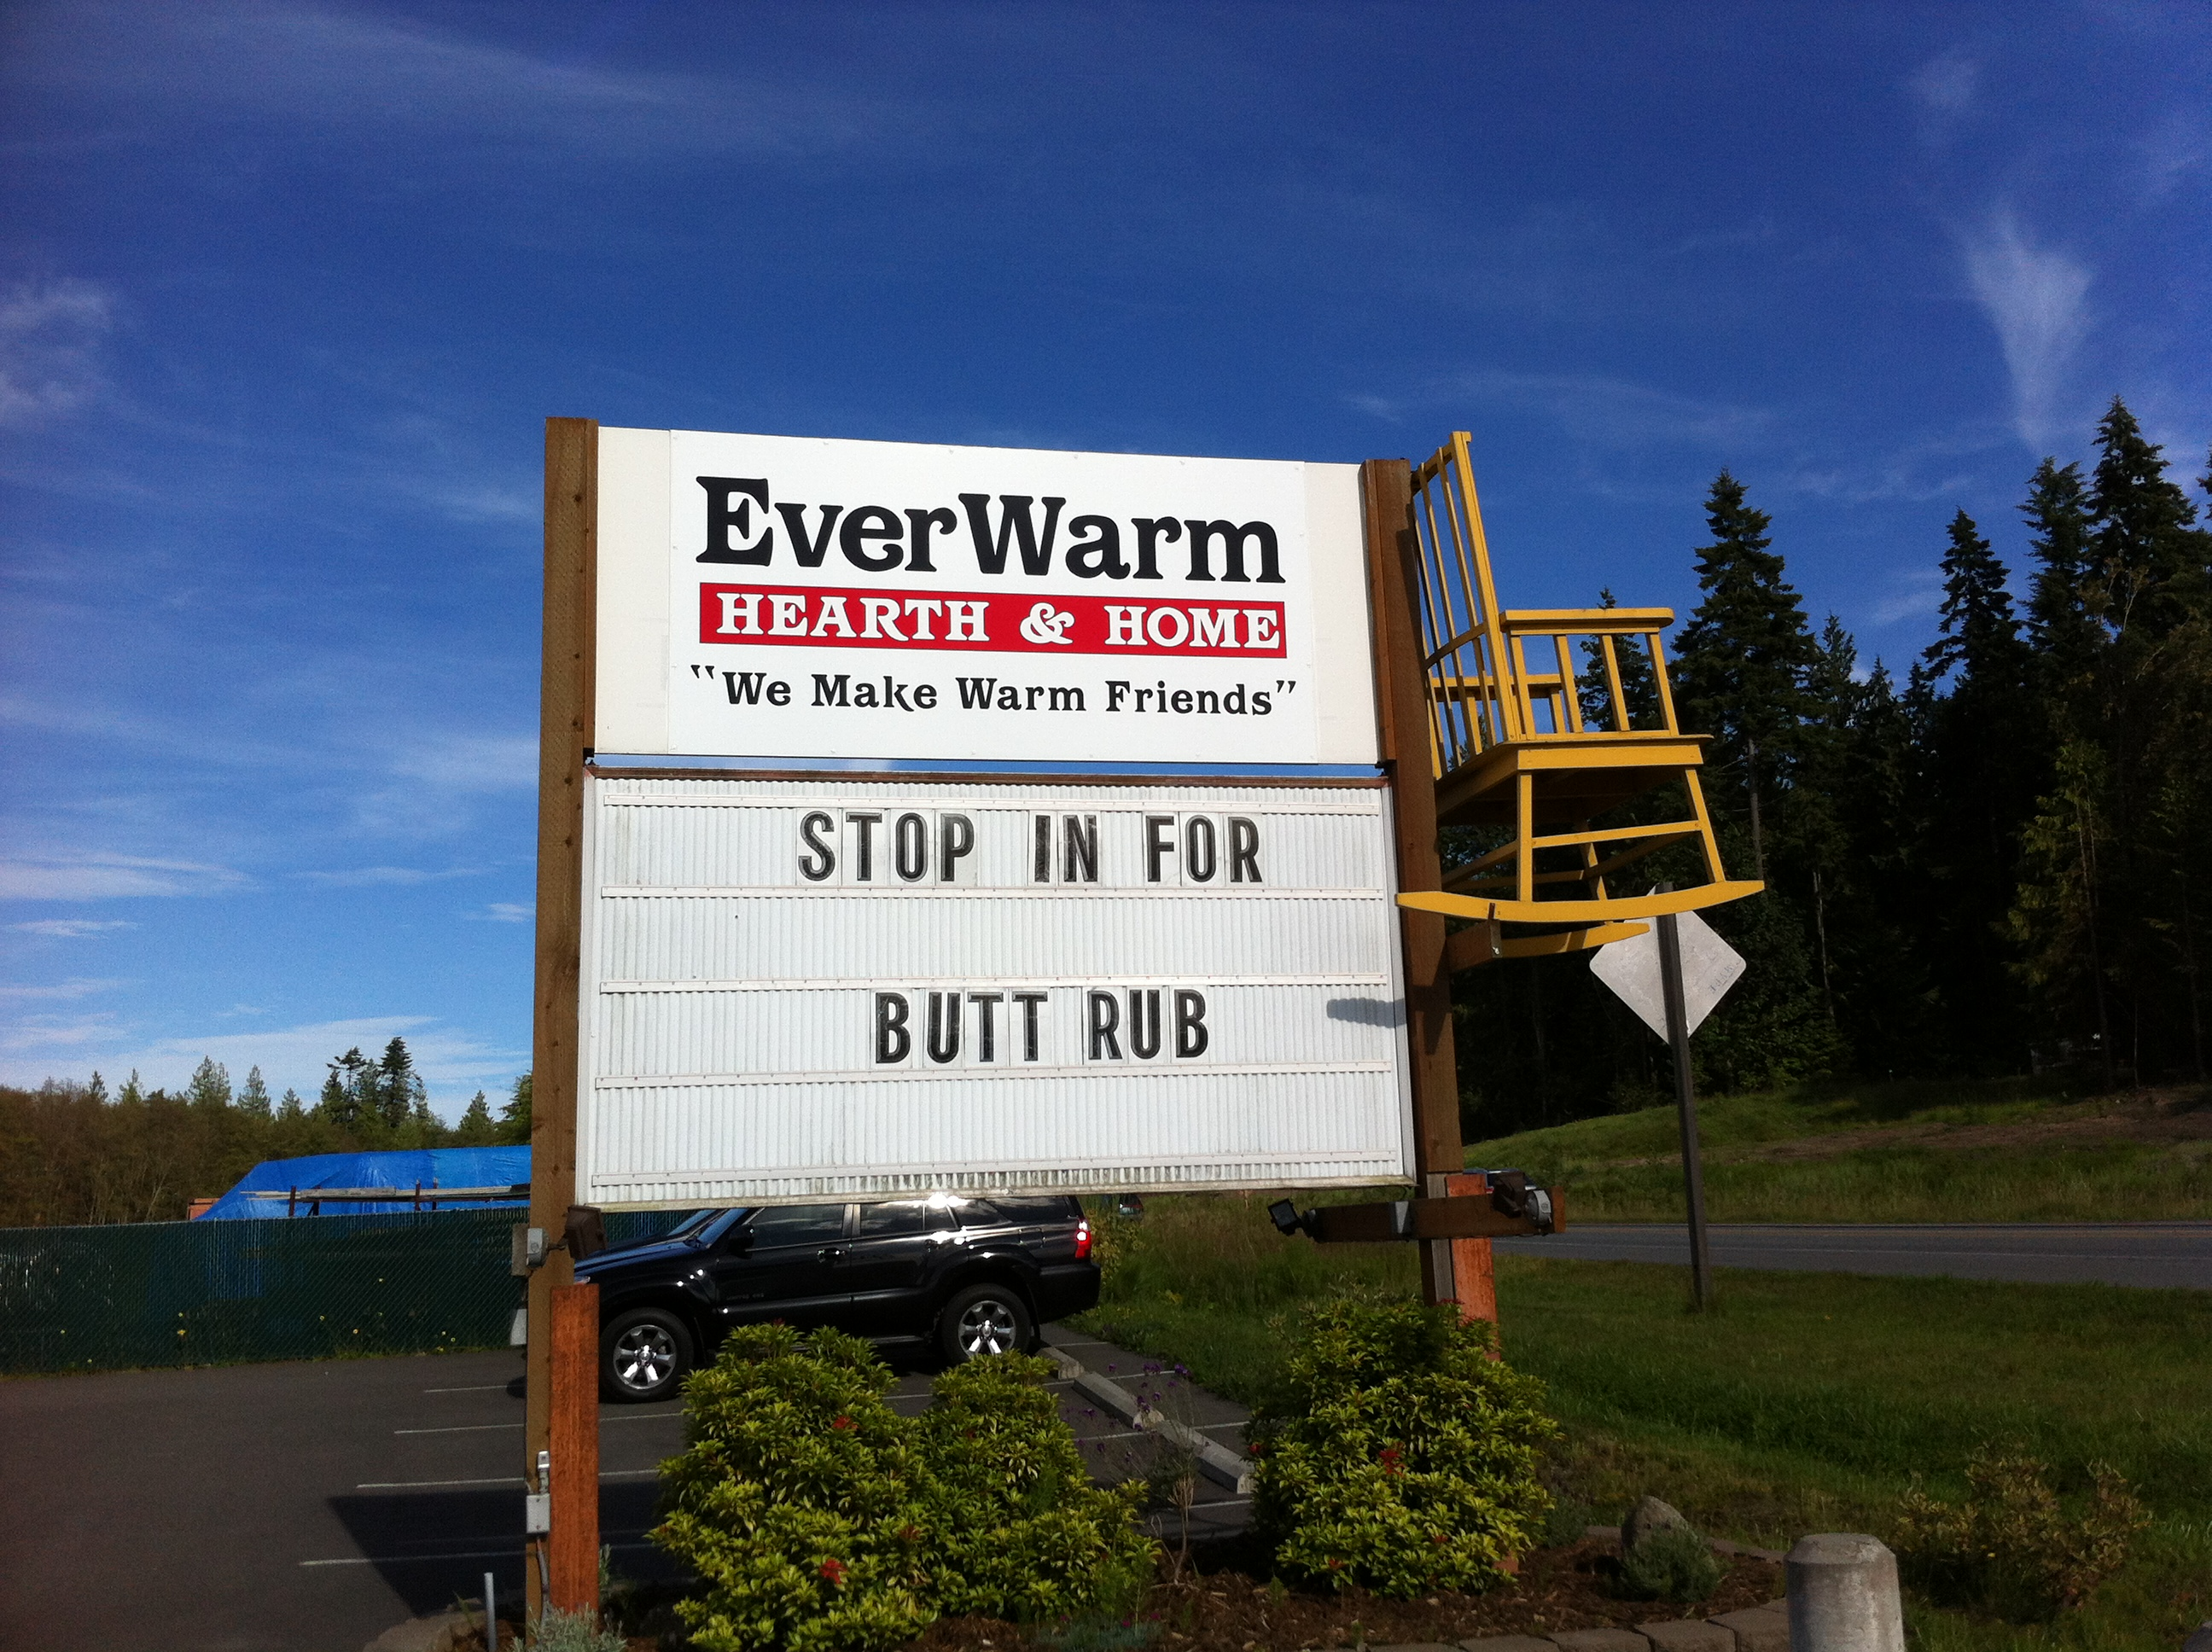 Hwy 101 outside Olympic Natl Park, WA.  I still don't understand what's being offered....